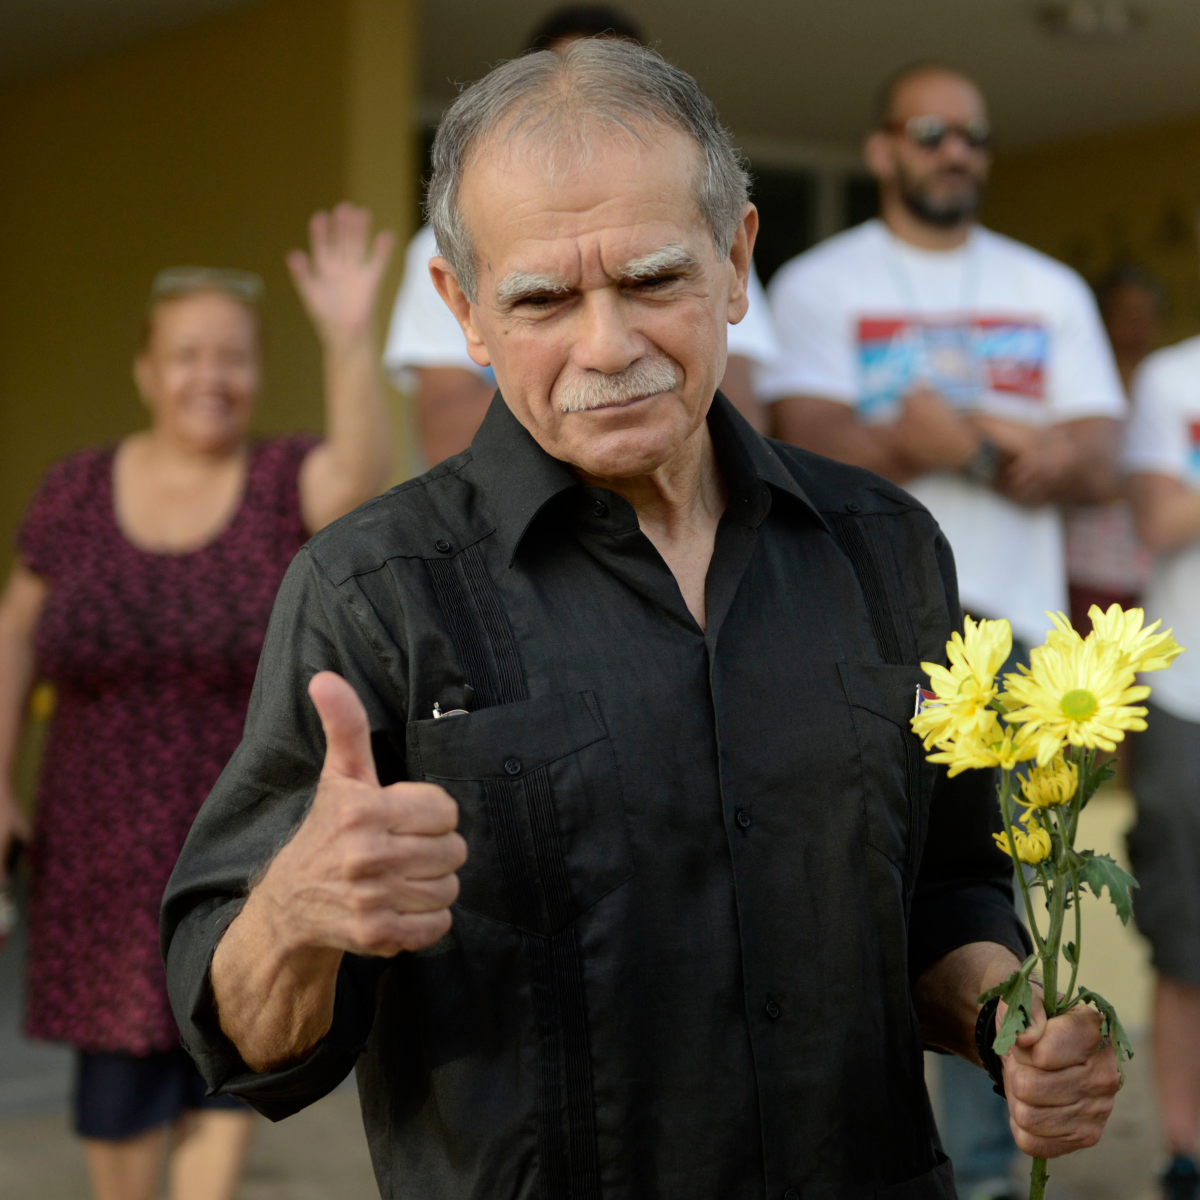 Puerto Rican nationalist Oscar Lopez Rivera gestures as he is released from home confinement after 36 years in federal custody, in San Juan, Puerto Rico, Wednesday, May 17, 2017. Lopez was considered a top leader of Puerto Rican militant group that said it was responsible for more than 100 bombings in several U.S. cities and Puerto Rico during the 1970s and early 1980s. (Carlos Giusti/AP)